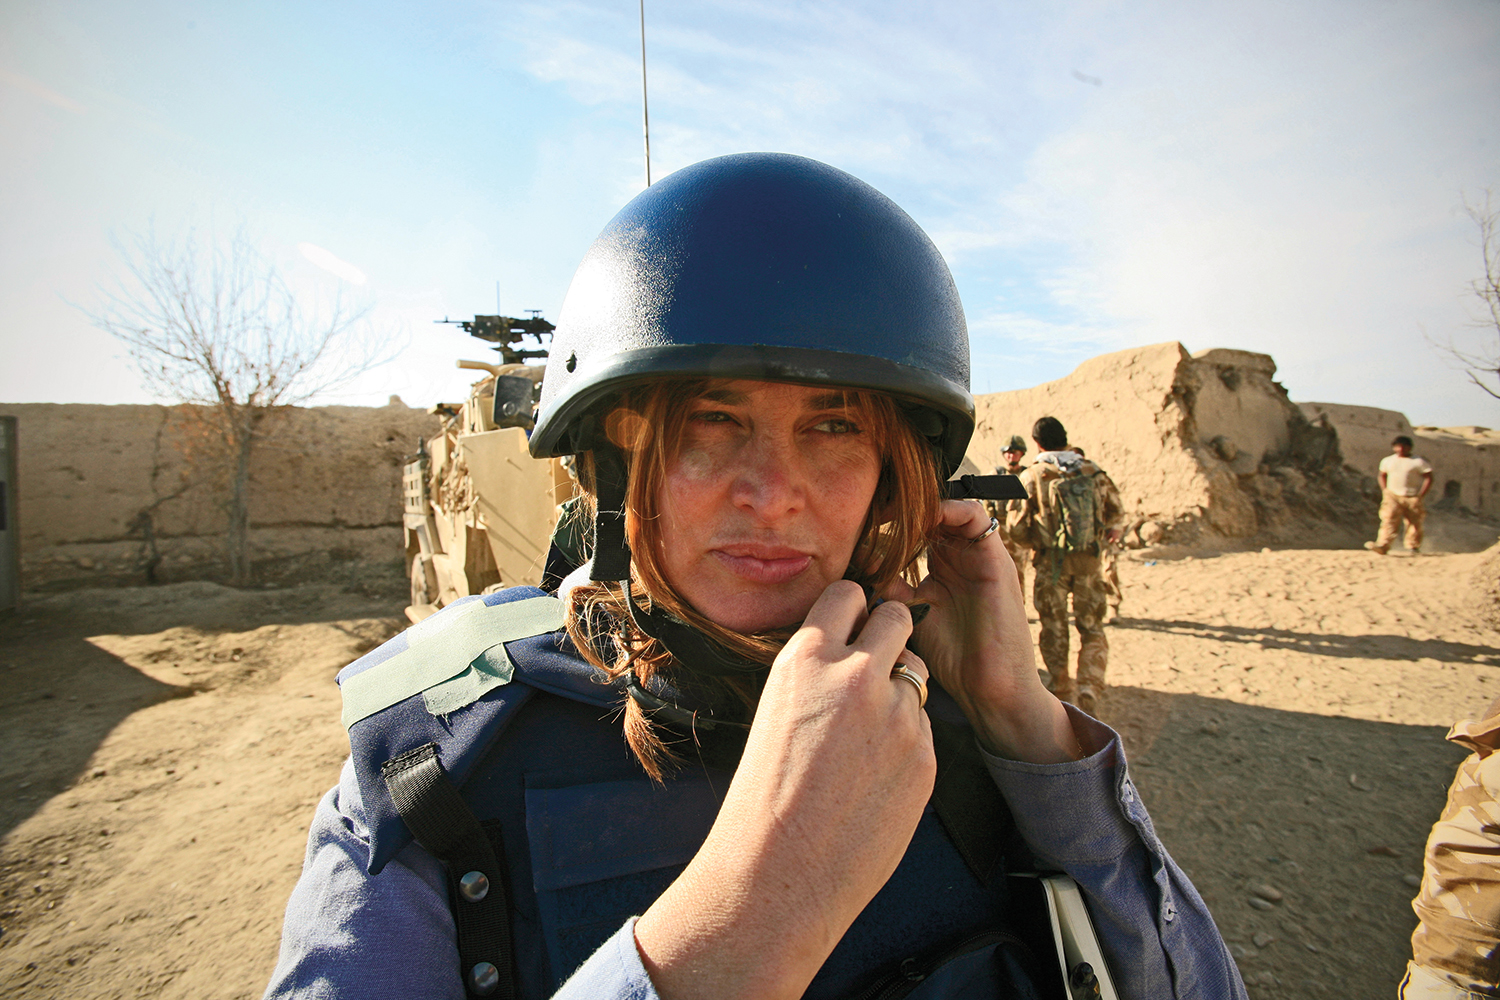 Janine di Giovanni in Helmand province, Afghanistan, in January 2010.